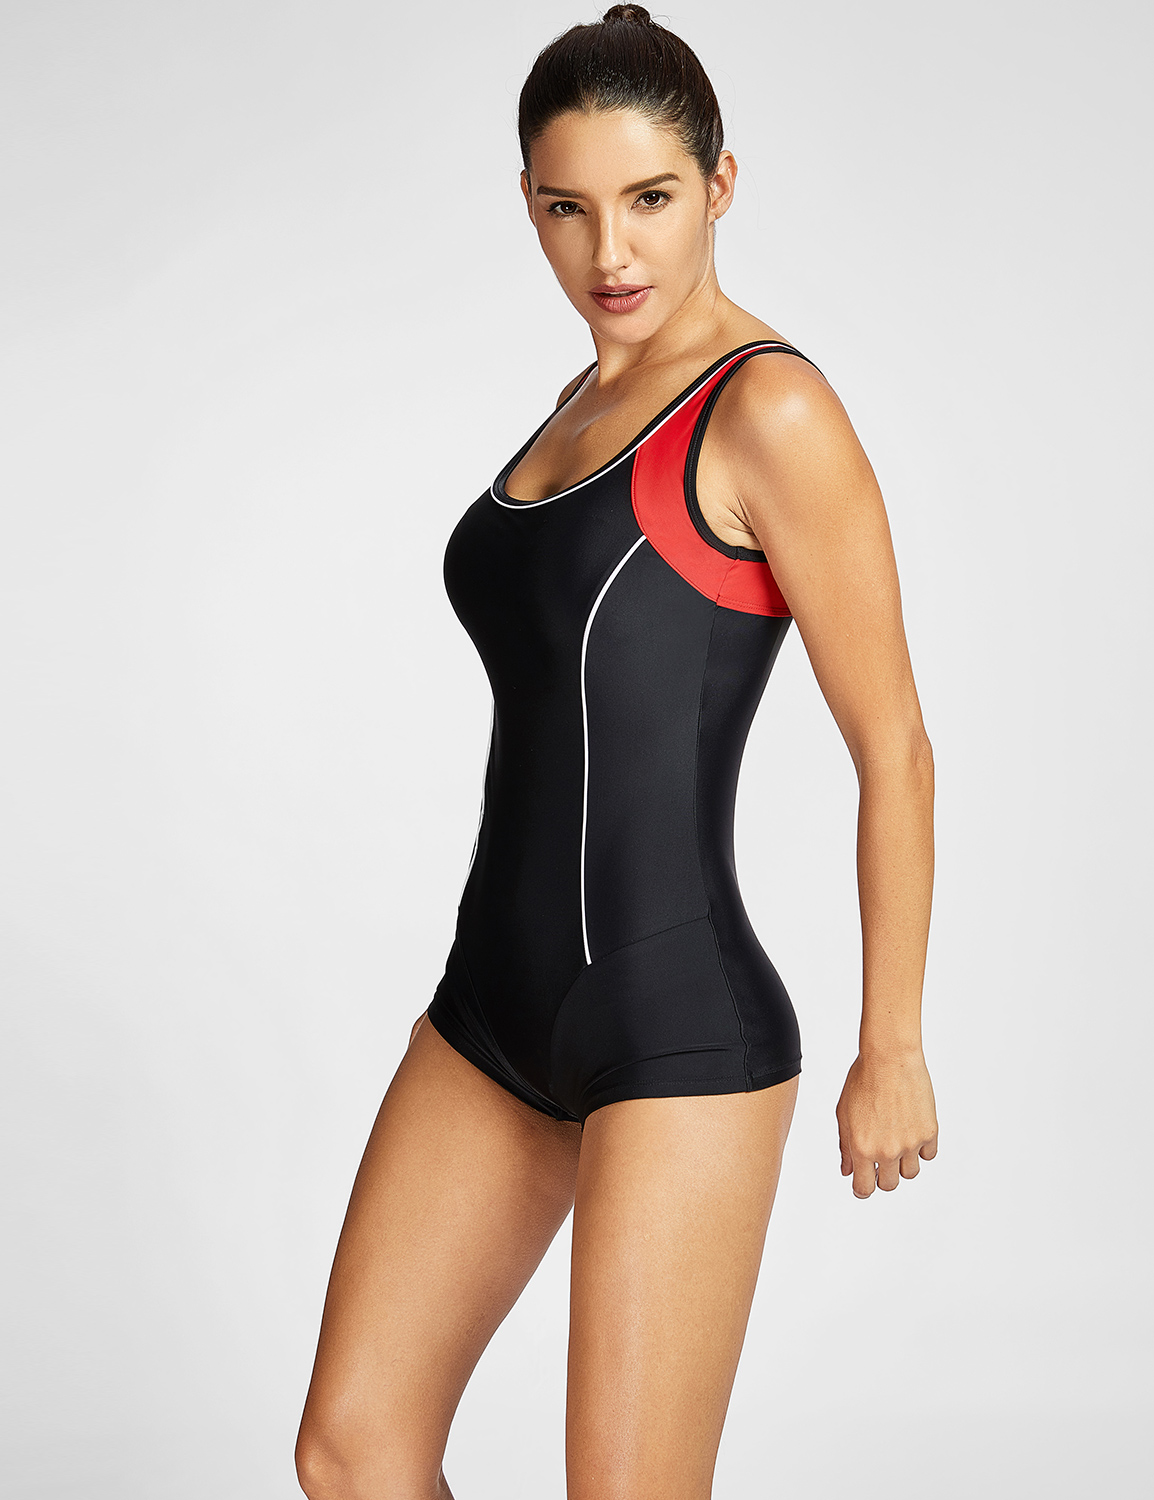 2d510b6127e Women s Plus Size Athletic Sport One Piece Boy-Leg Swimsuits